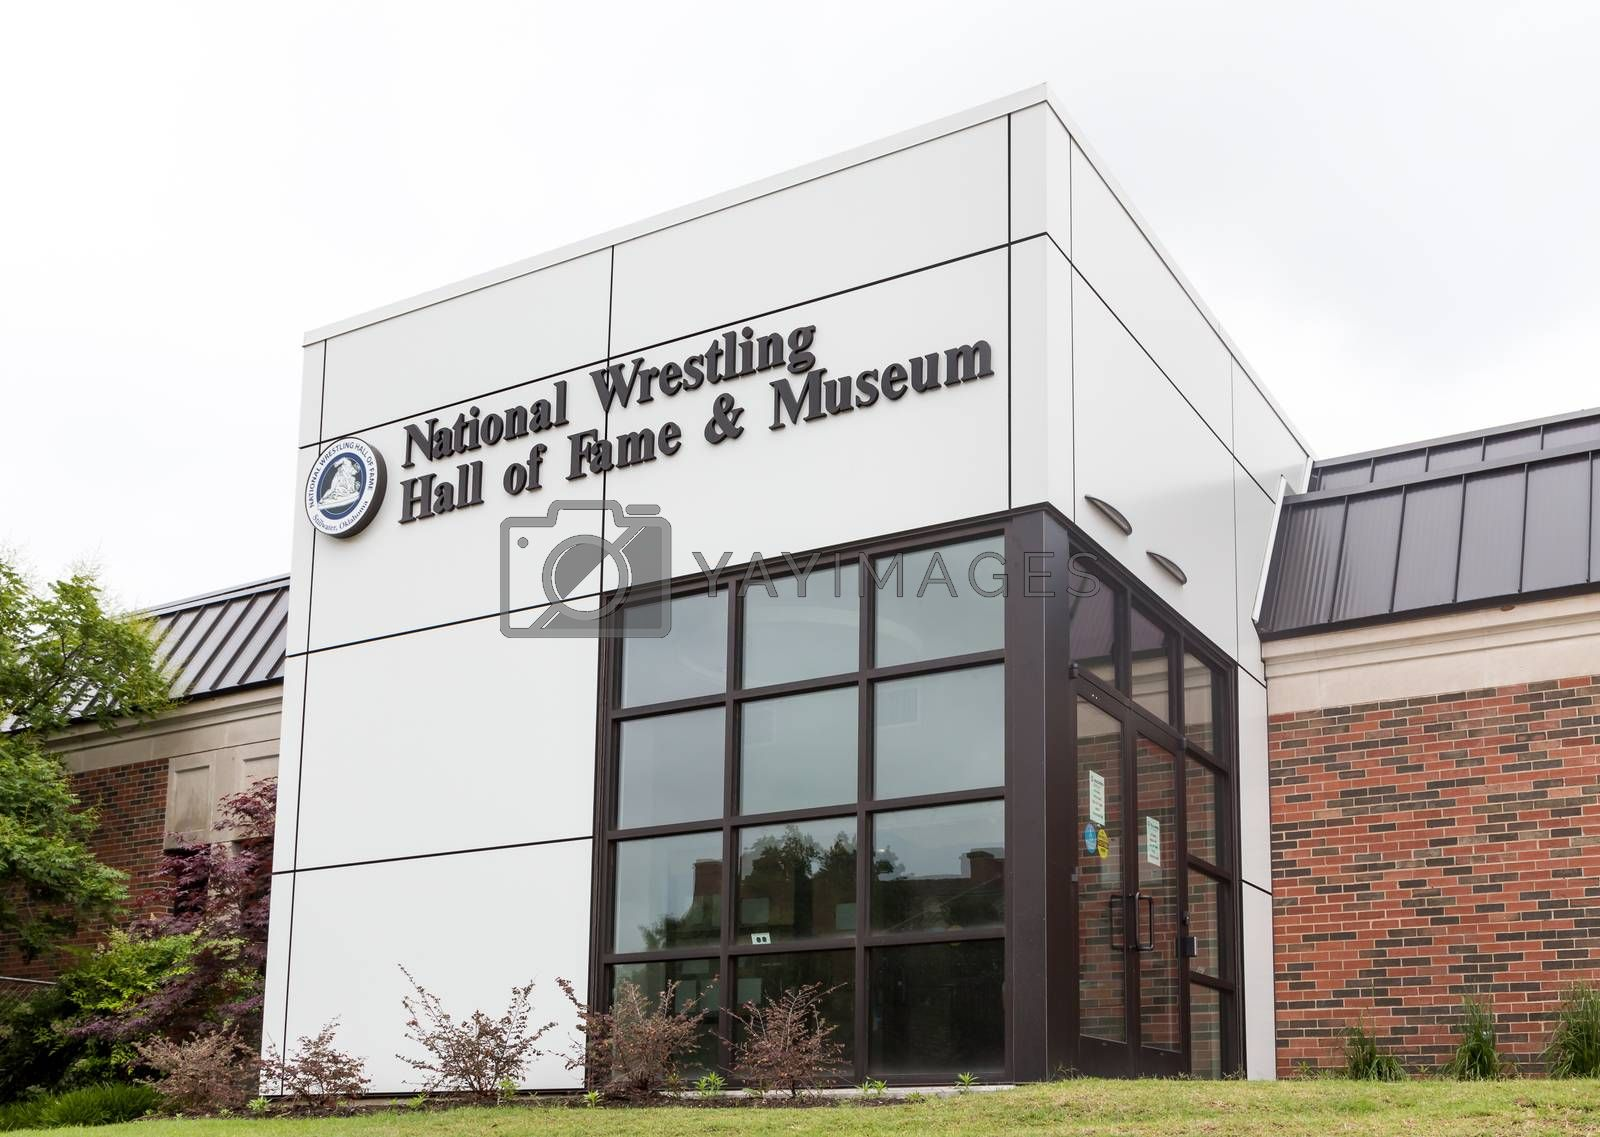 STILLWATER, OK/USA - MAY 20, 2016: The National Wrestling Hall of Fame and Museum on the campus of Oklahoma State University.